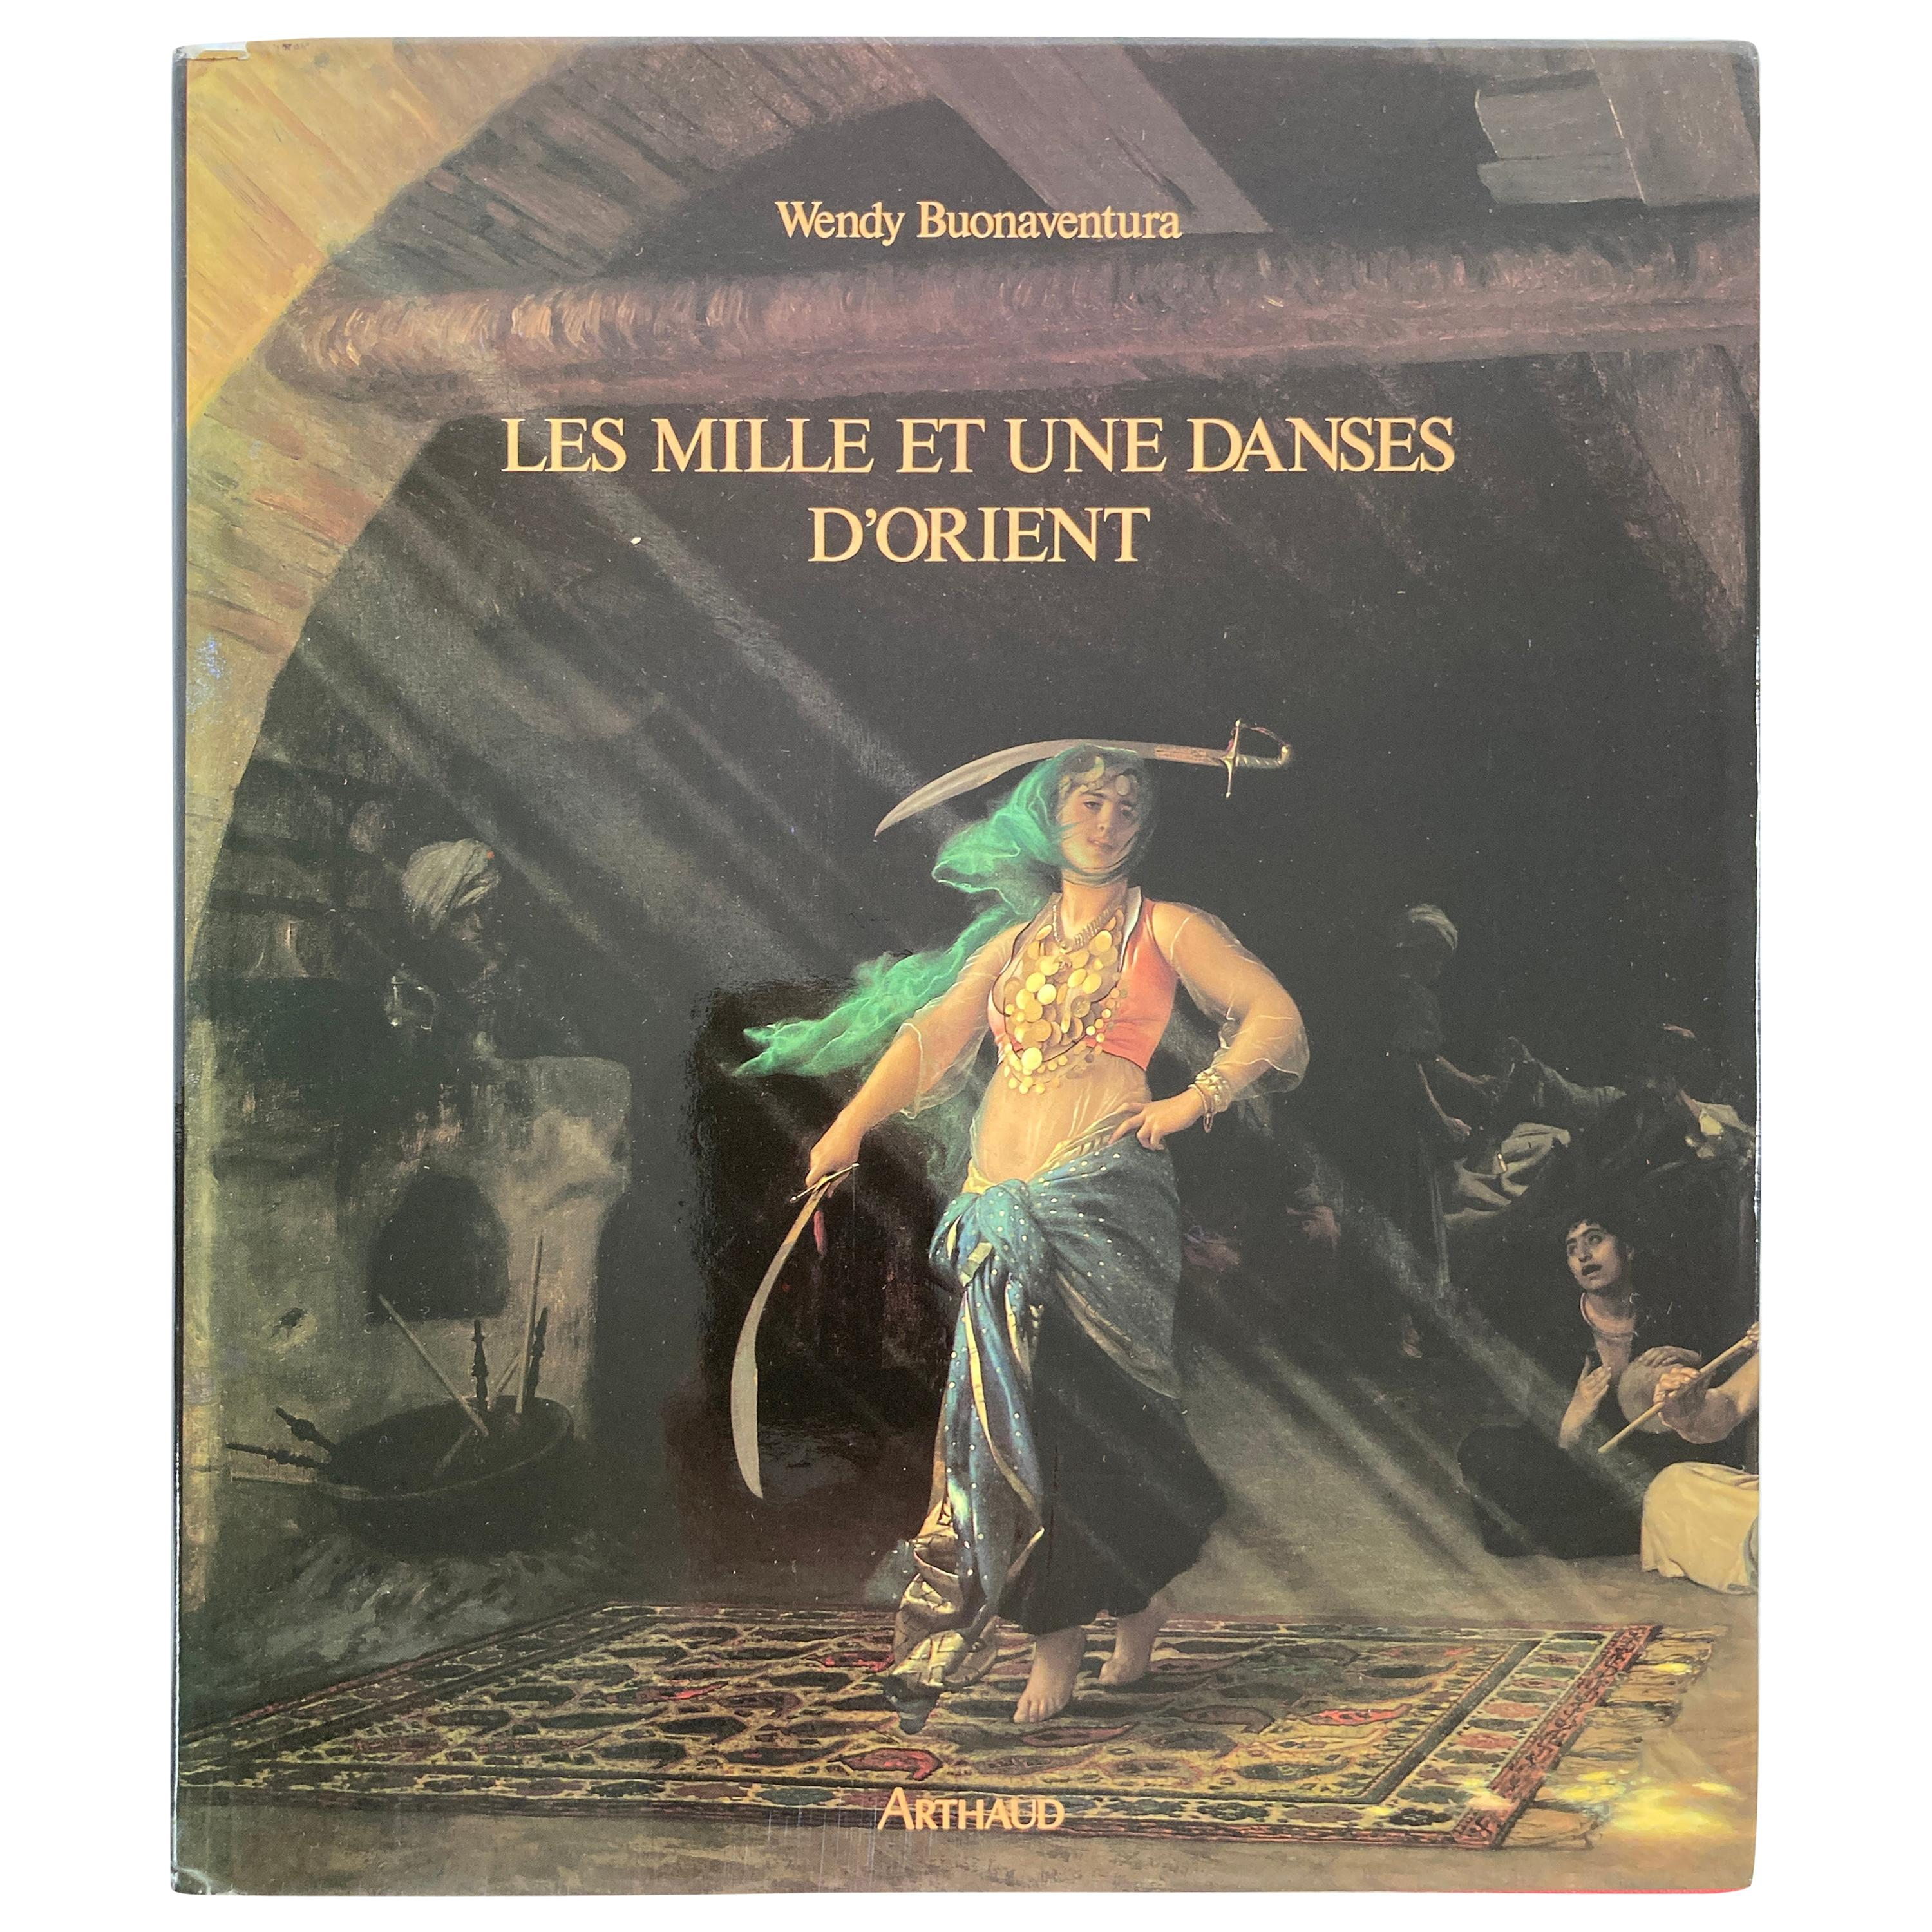 The Thousand and One Dances of the Orient 'French' Hardcover Coffee Table Book